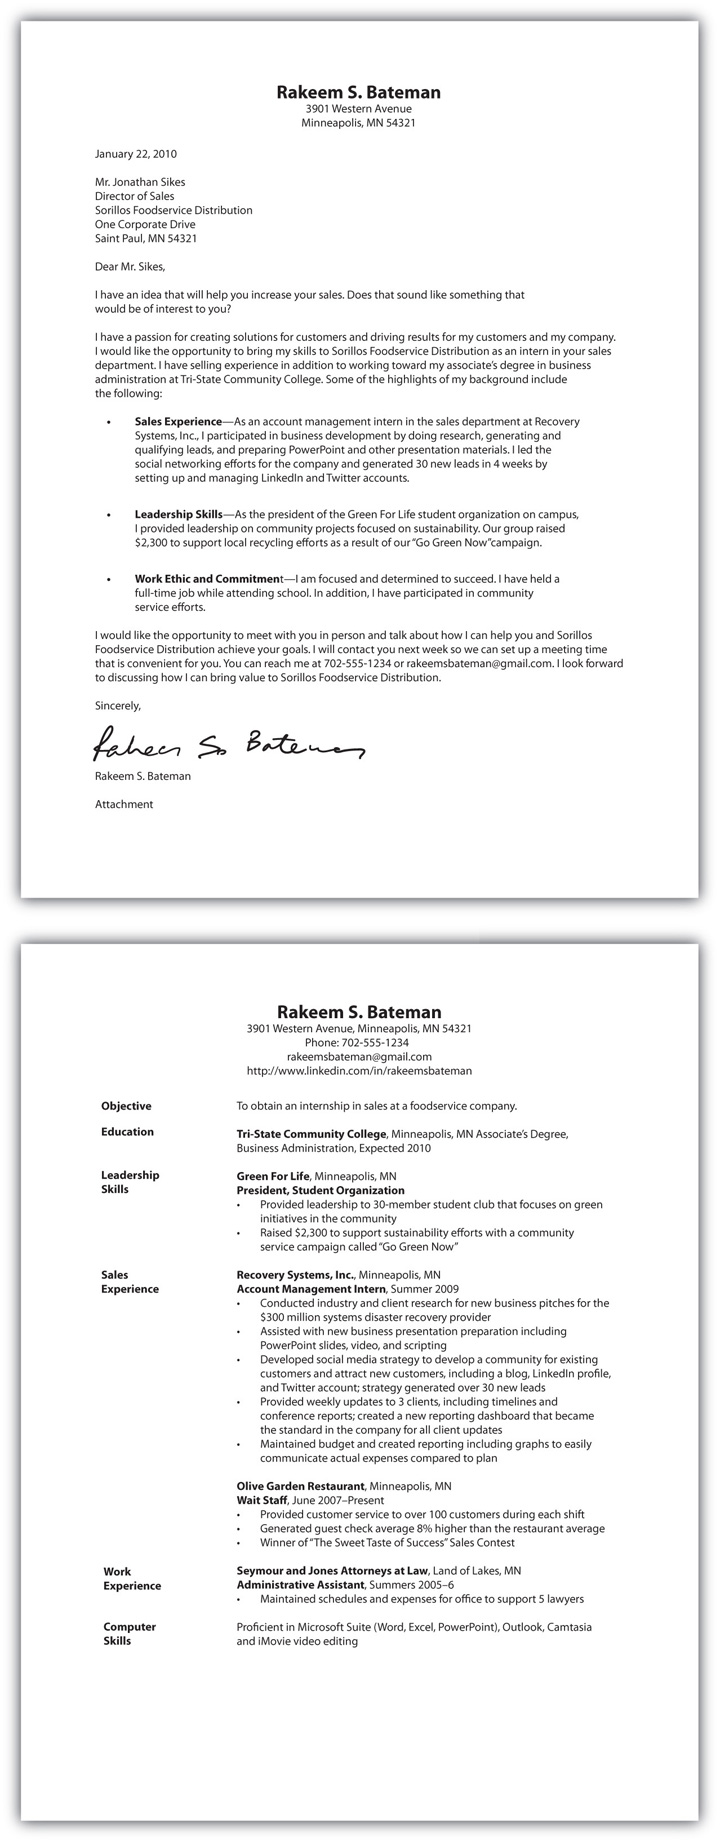 selling résumé and cover letter essentials best books for resume writing updated format Resume Best Books For Resume And Cover Letter Writing